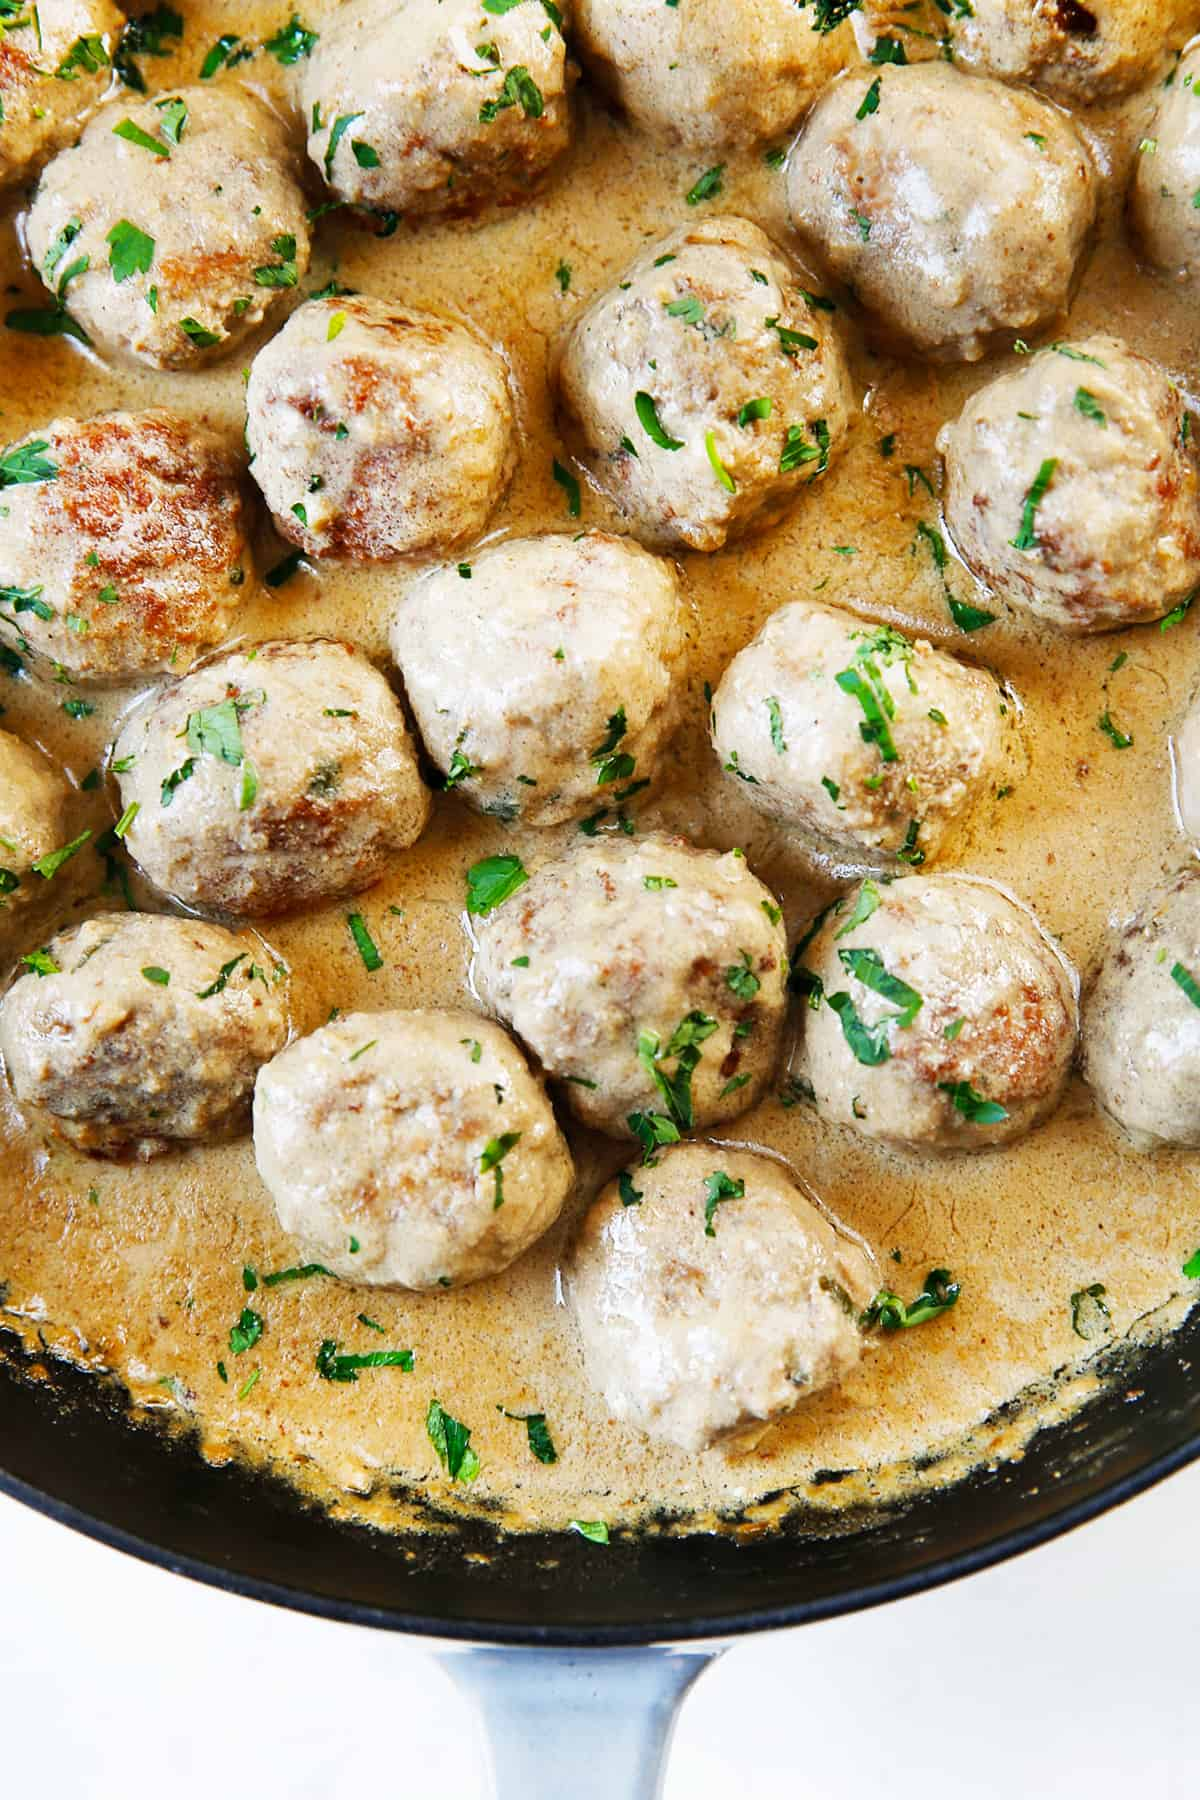 Gravy covered gluten free Swedish Meatballs in a pan.